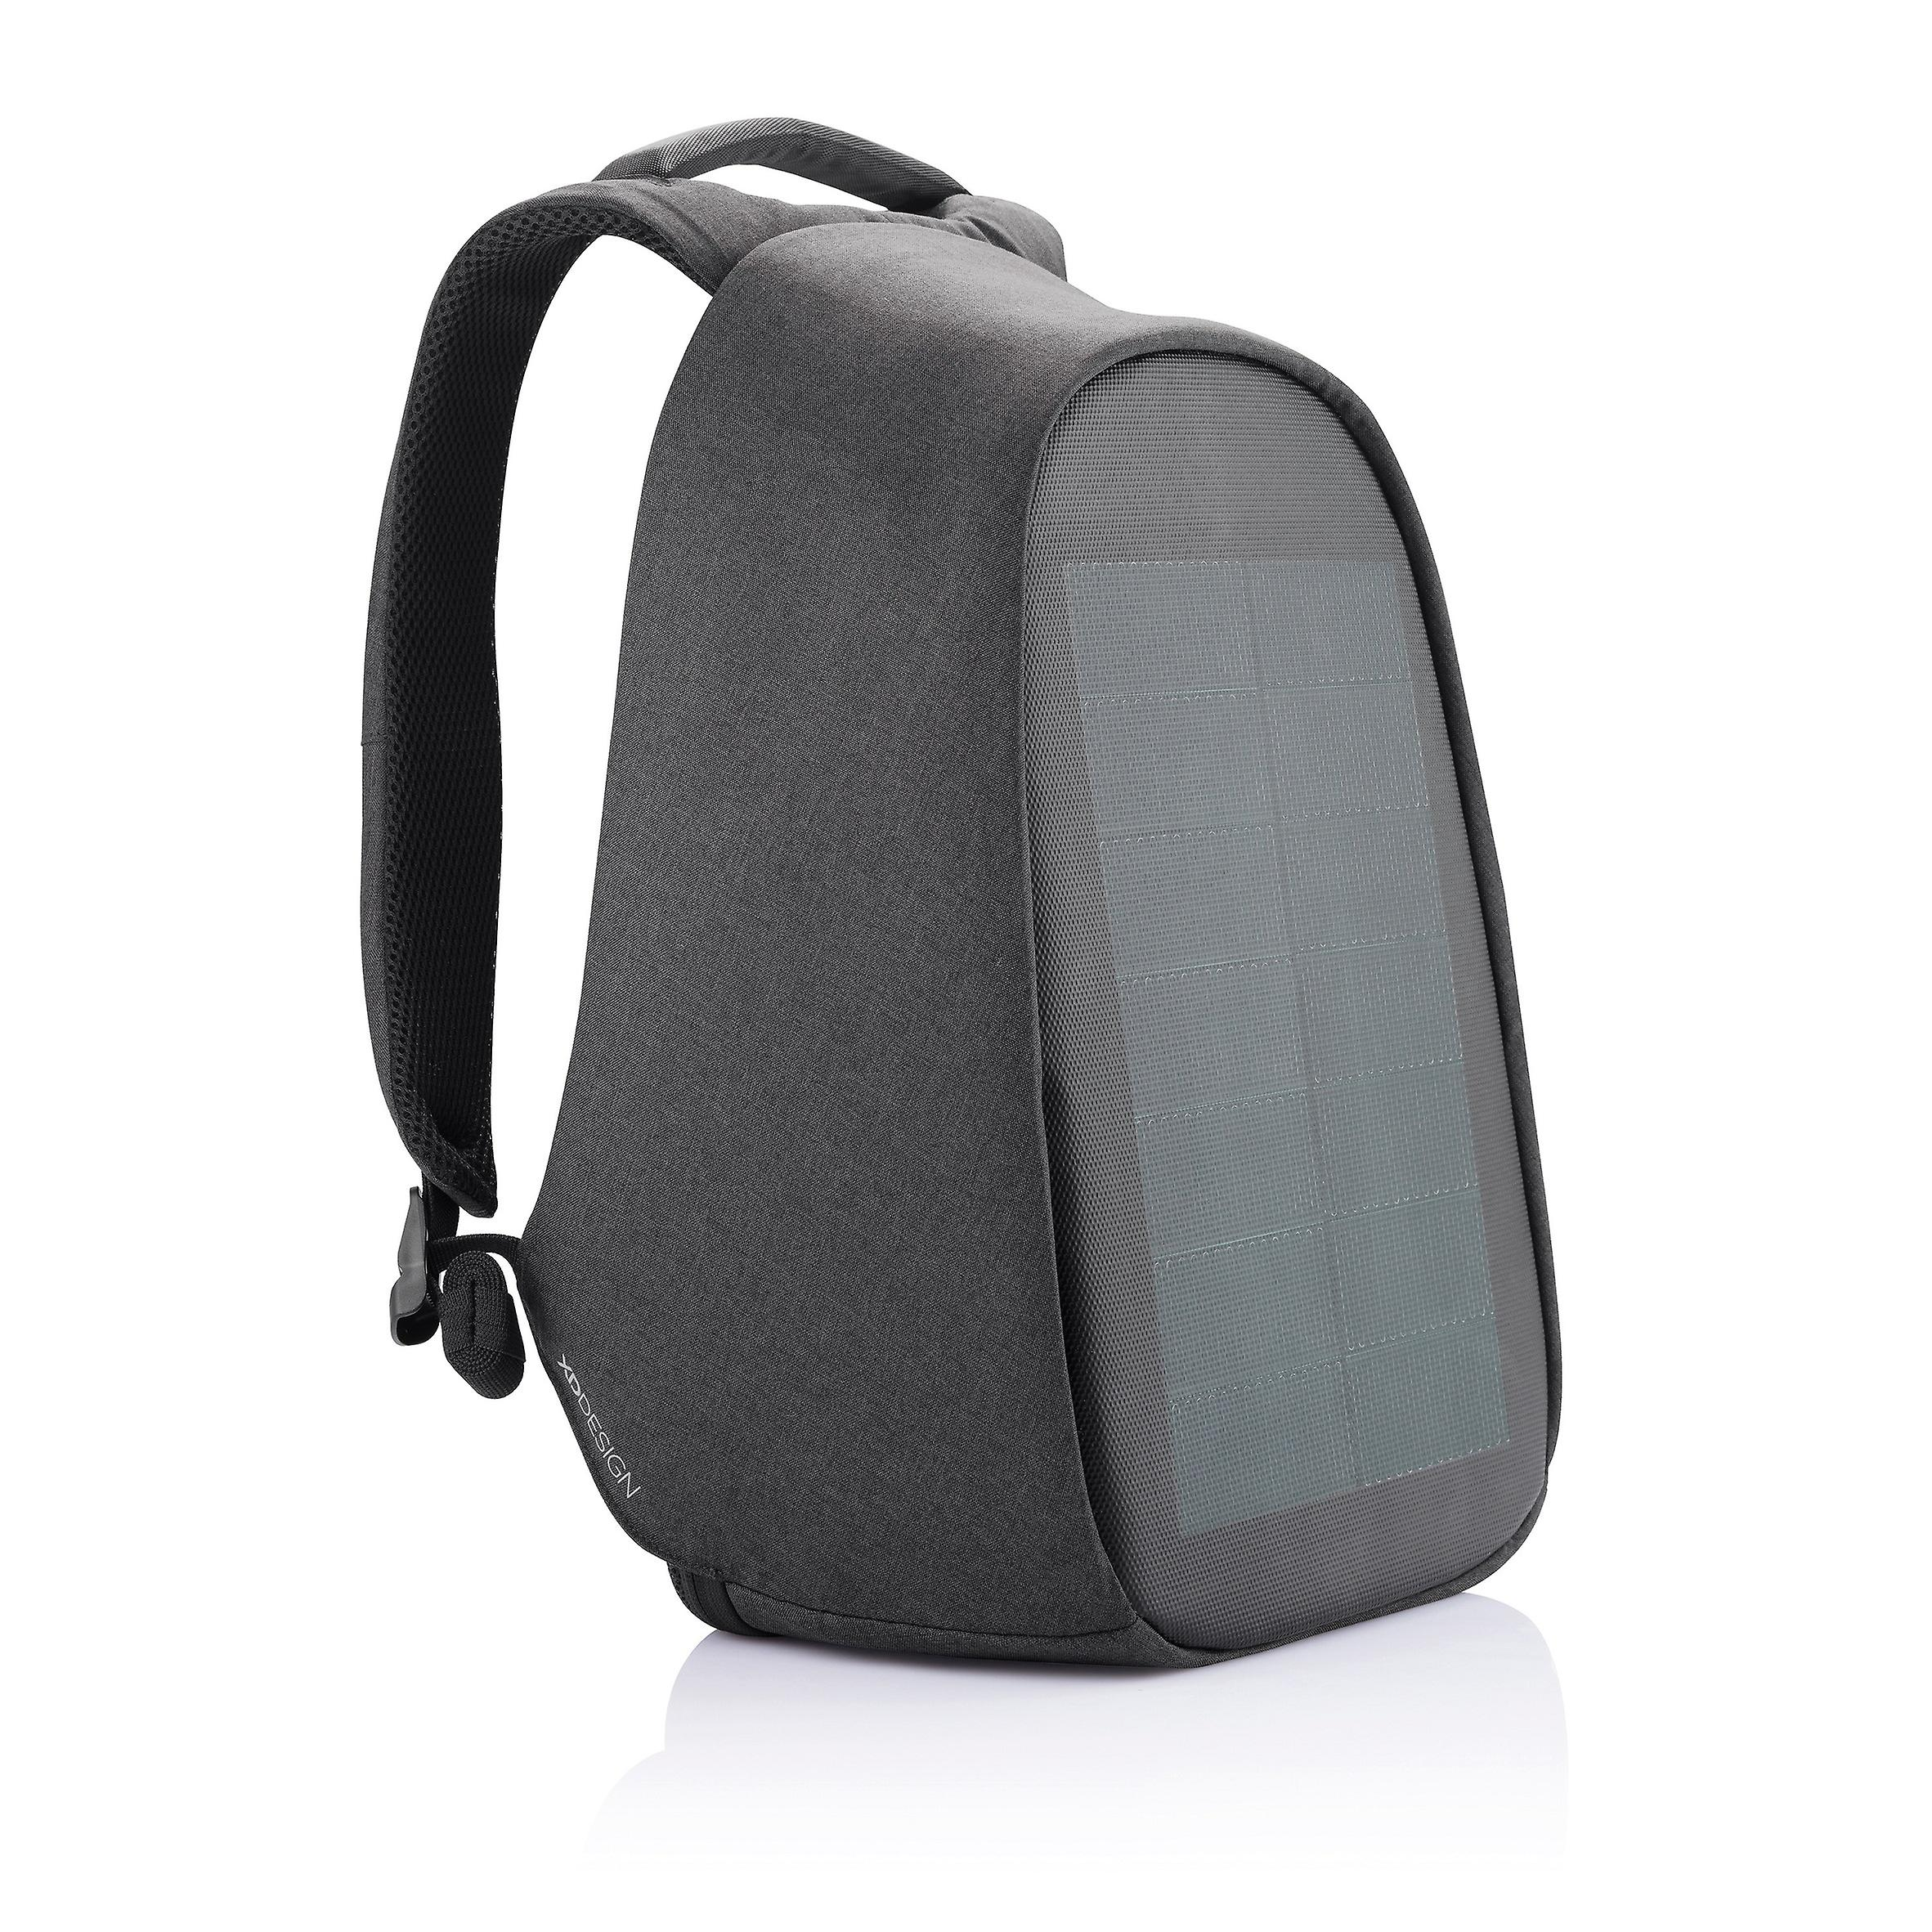 XD Design Bobby Tech Anti-Theft Backpack Wireless Solar Charger USB/Type C